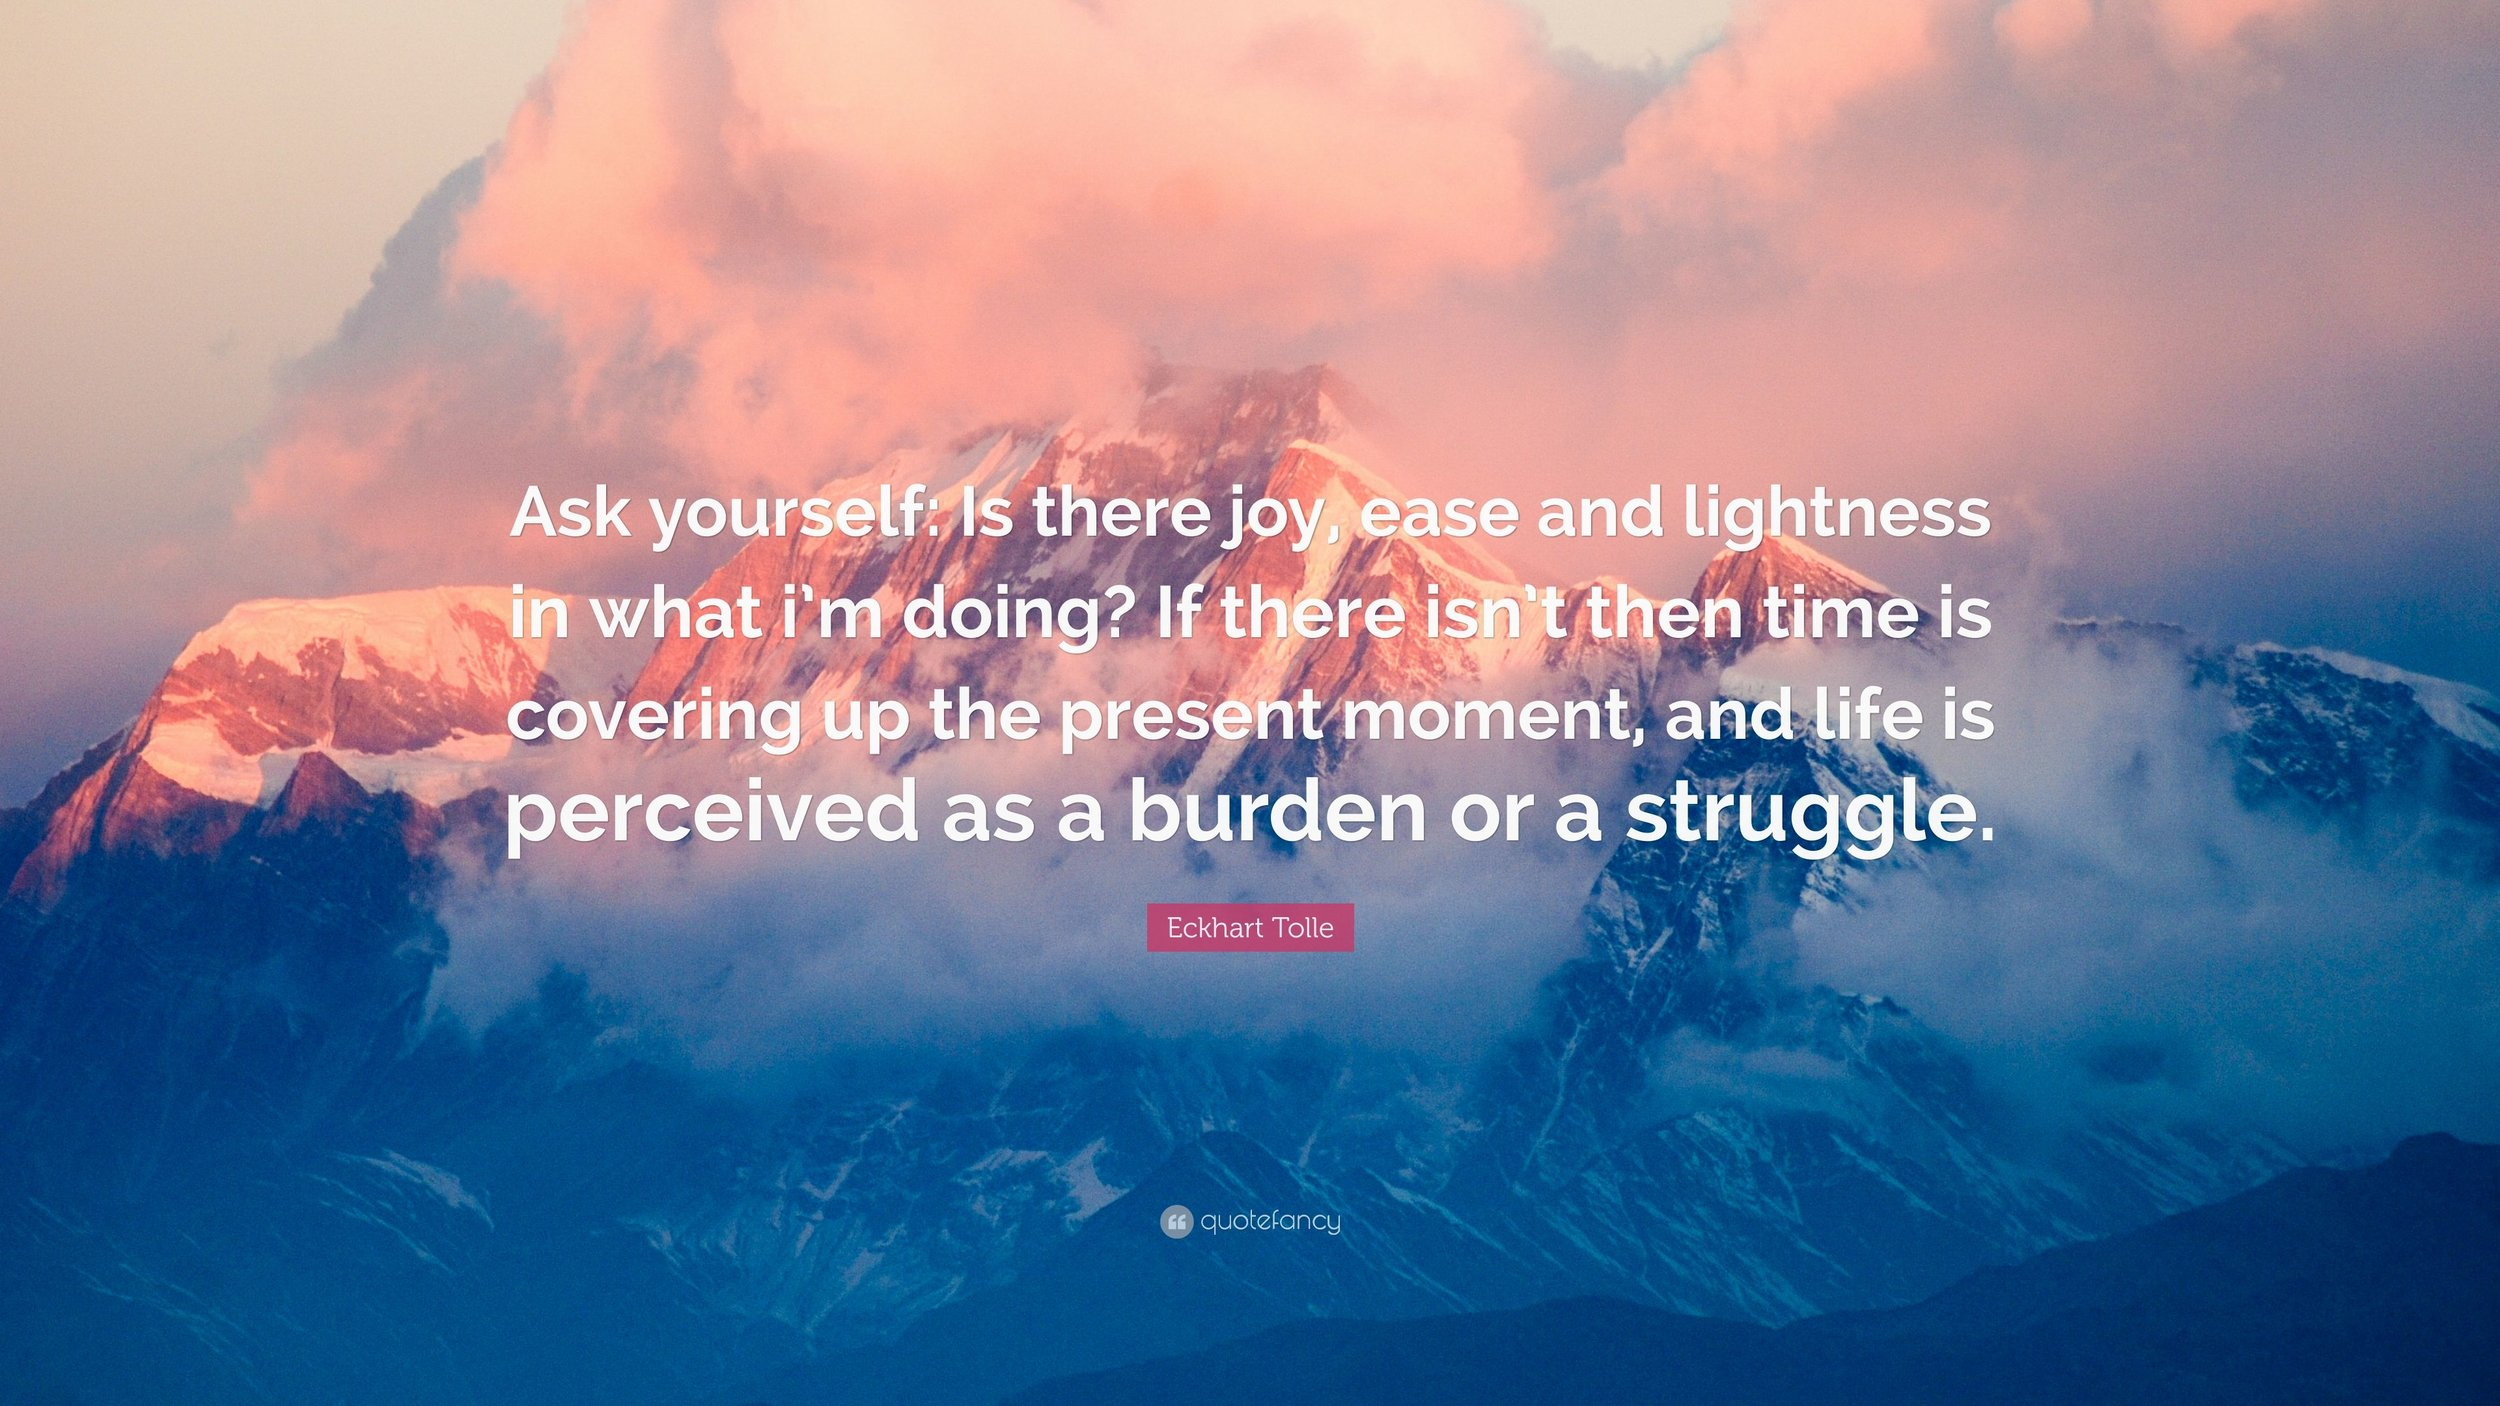 2323214-Eckhart-Tolle-Quote-Ask-yourself-Is-there-joy-ease-and-lightness.jpg